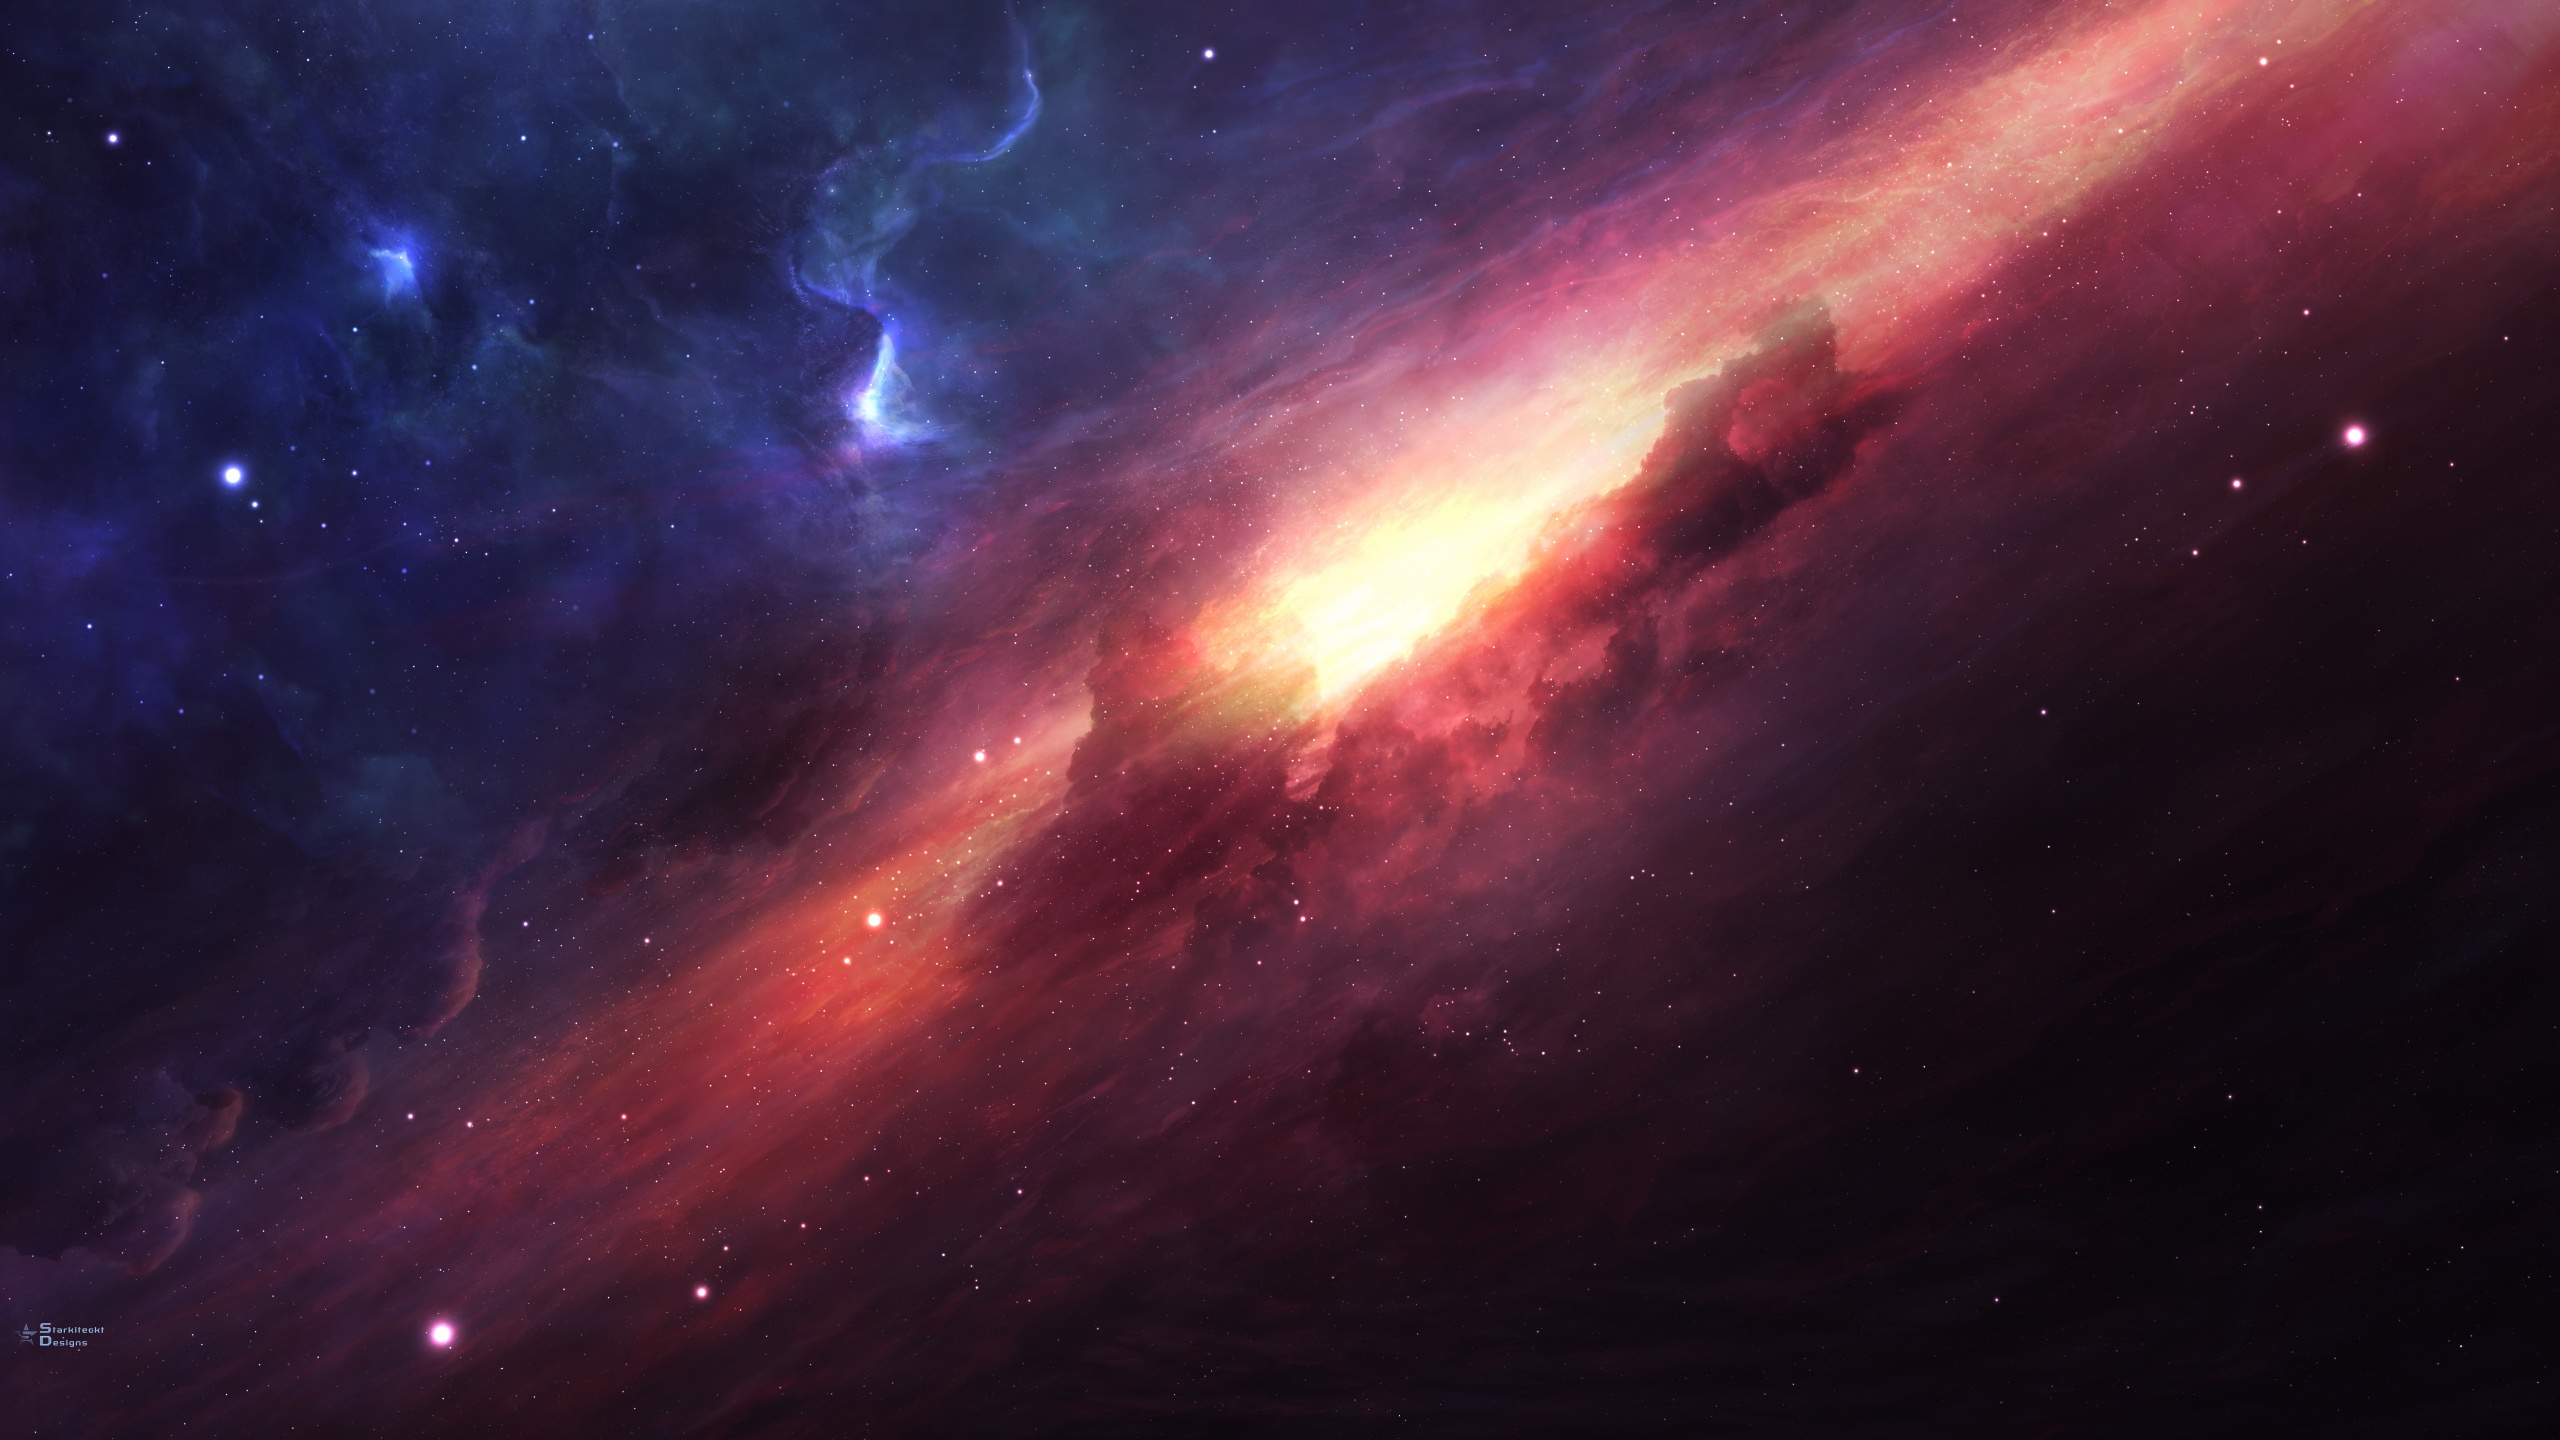 digital space universe 4k 8k wallpapers in jpg format for free download